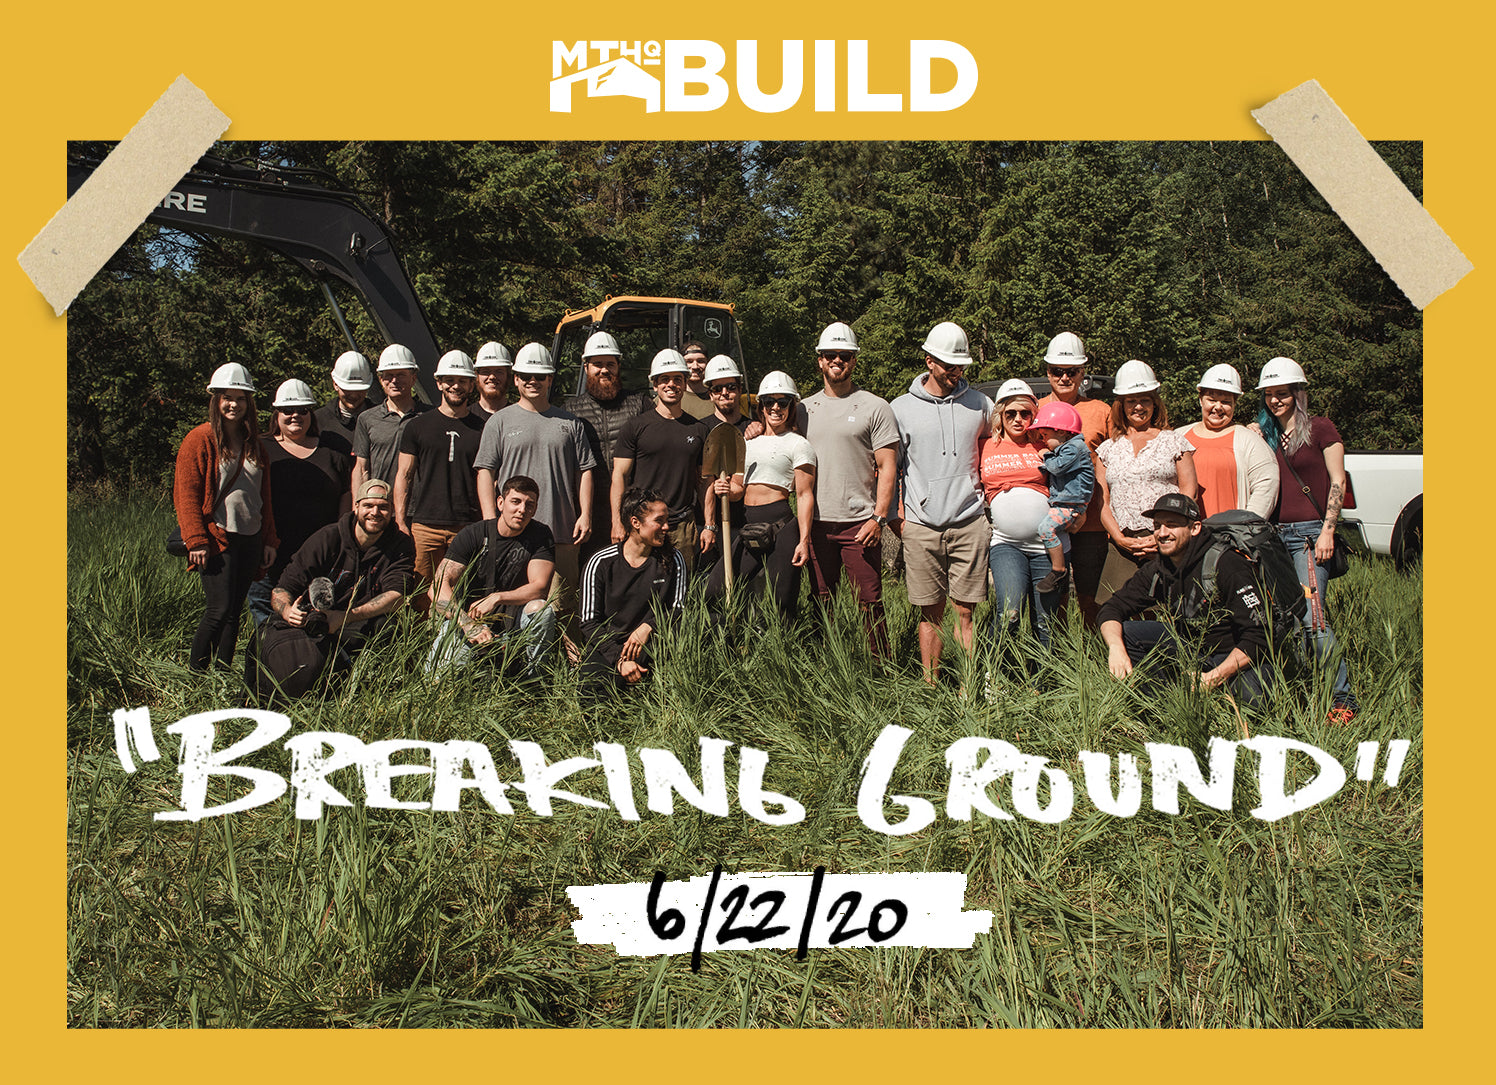 BREAKING GROUND | #MTHQBUILD